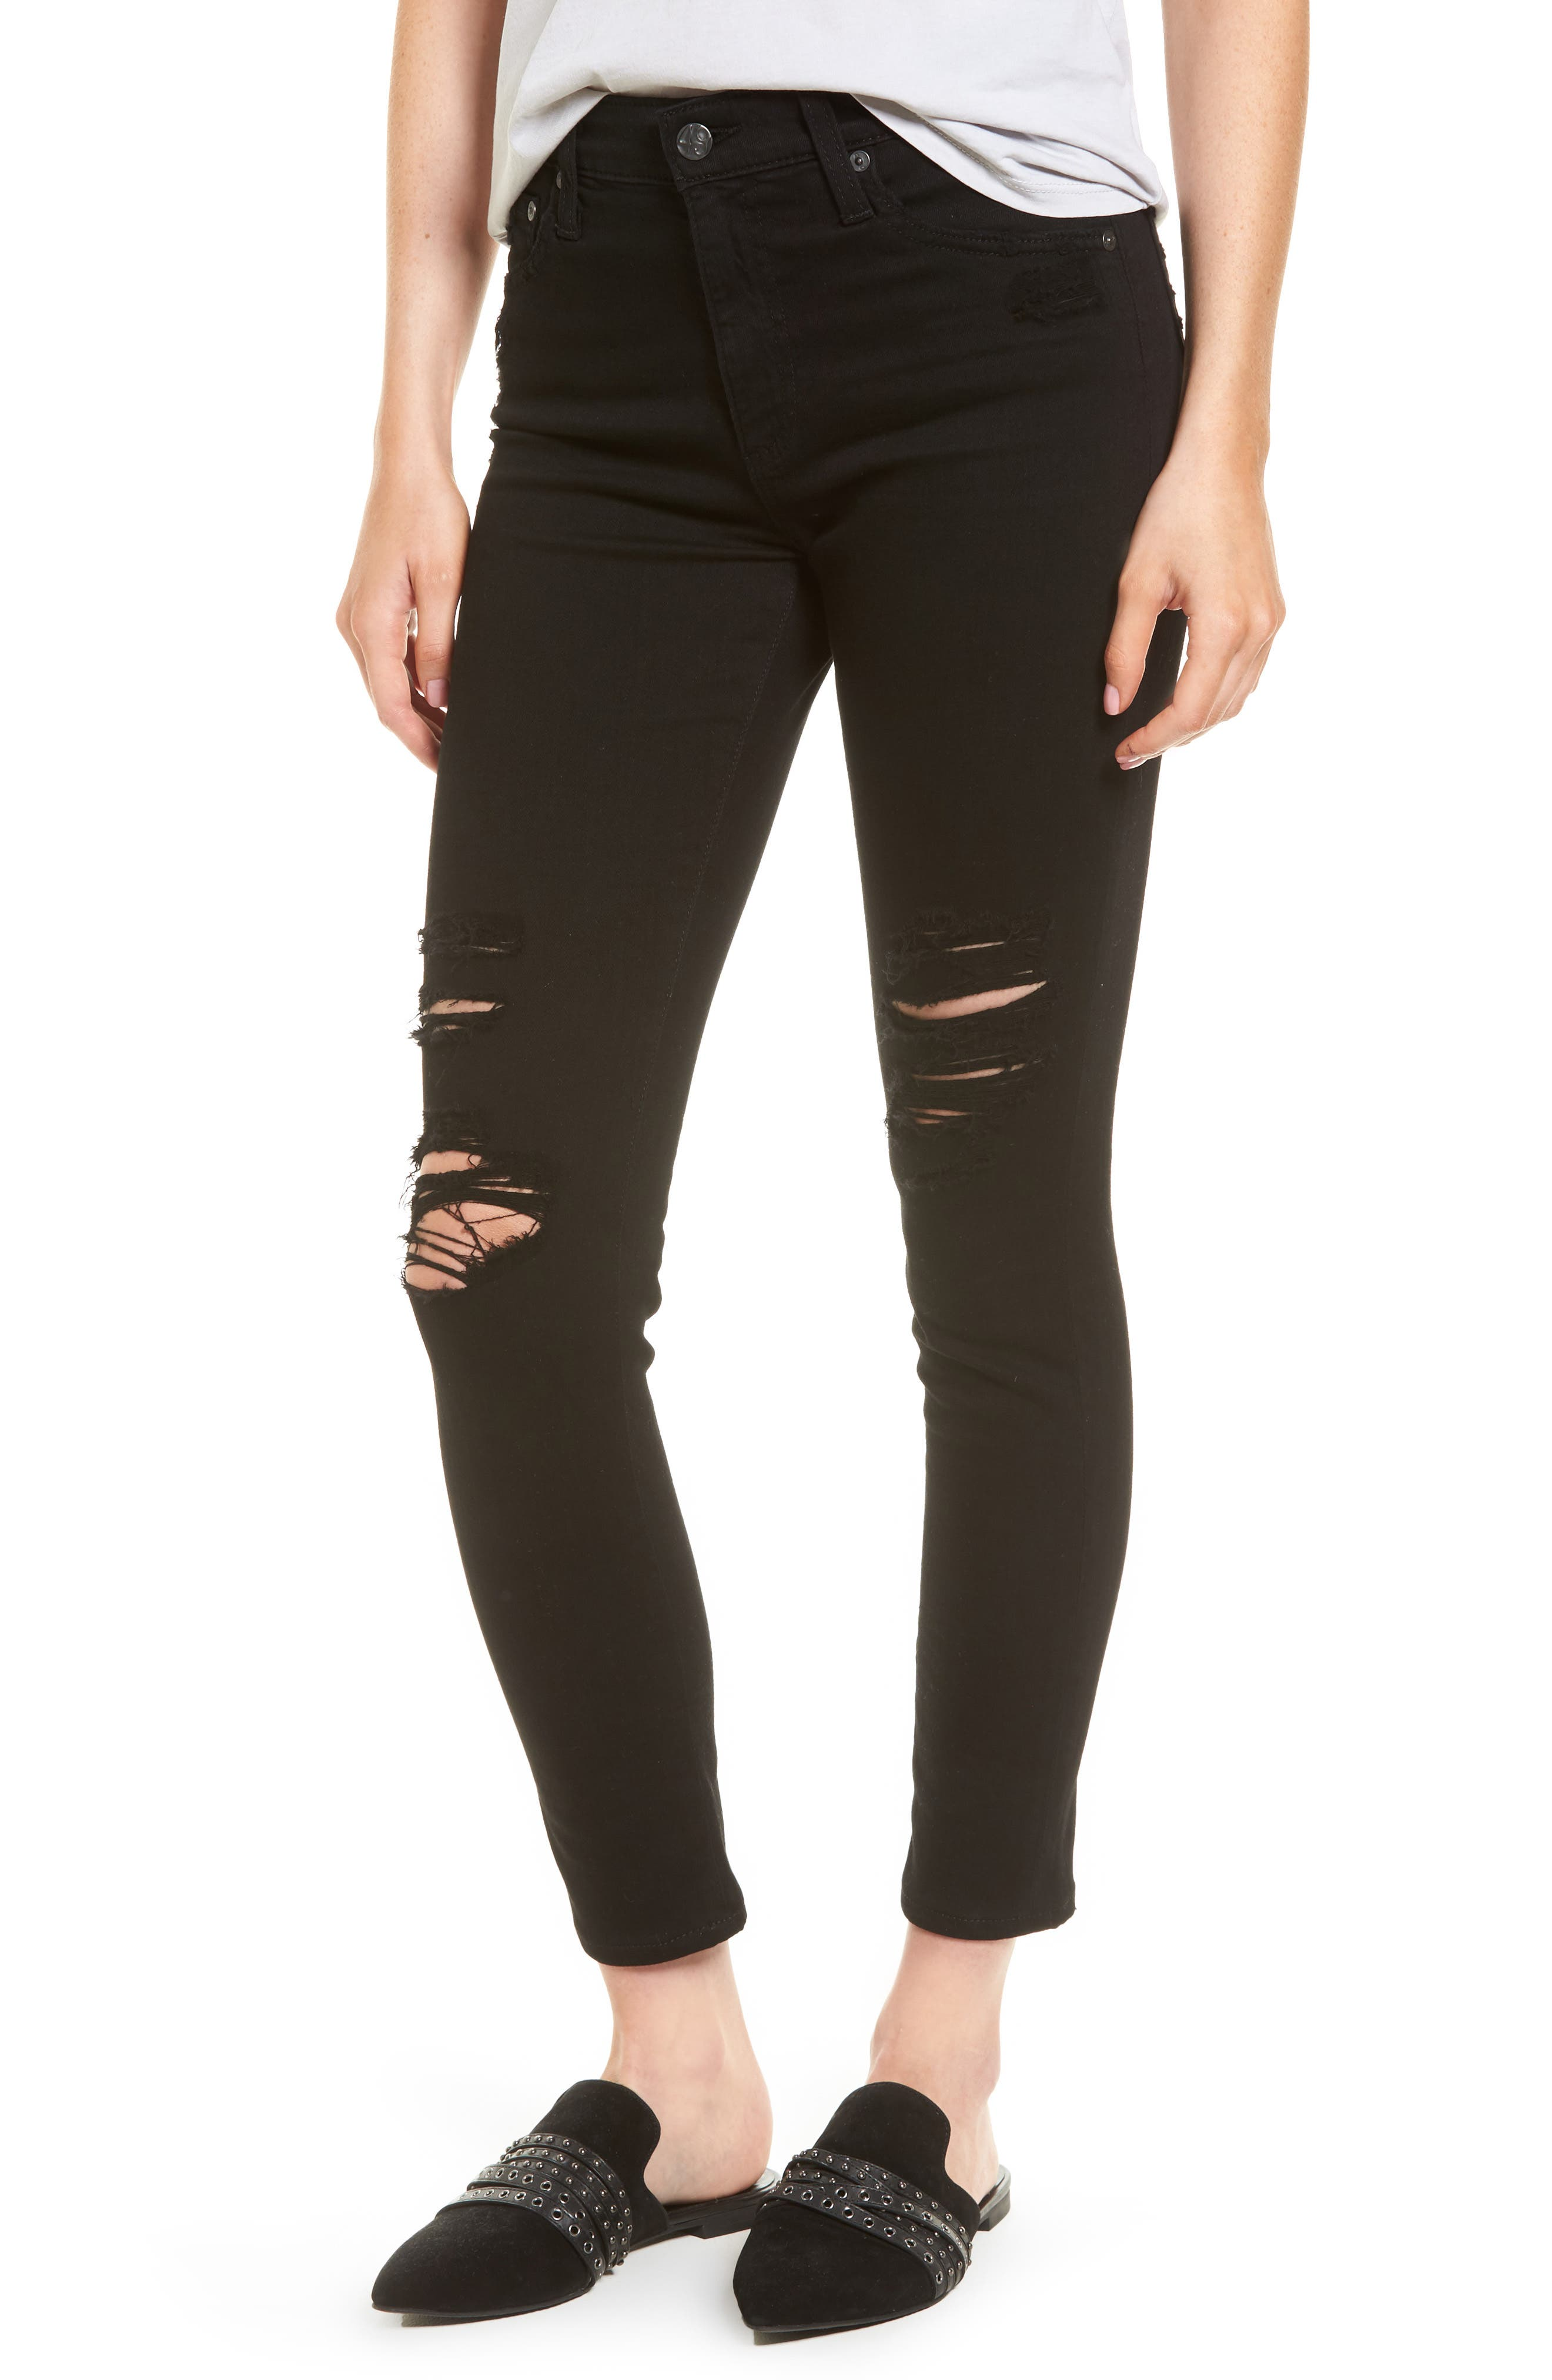 The Farrah High Waist Ankle Skinny Faux Leather Pants,                             Main thumbnail 1, color,                             015